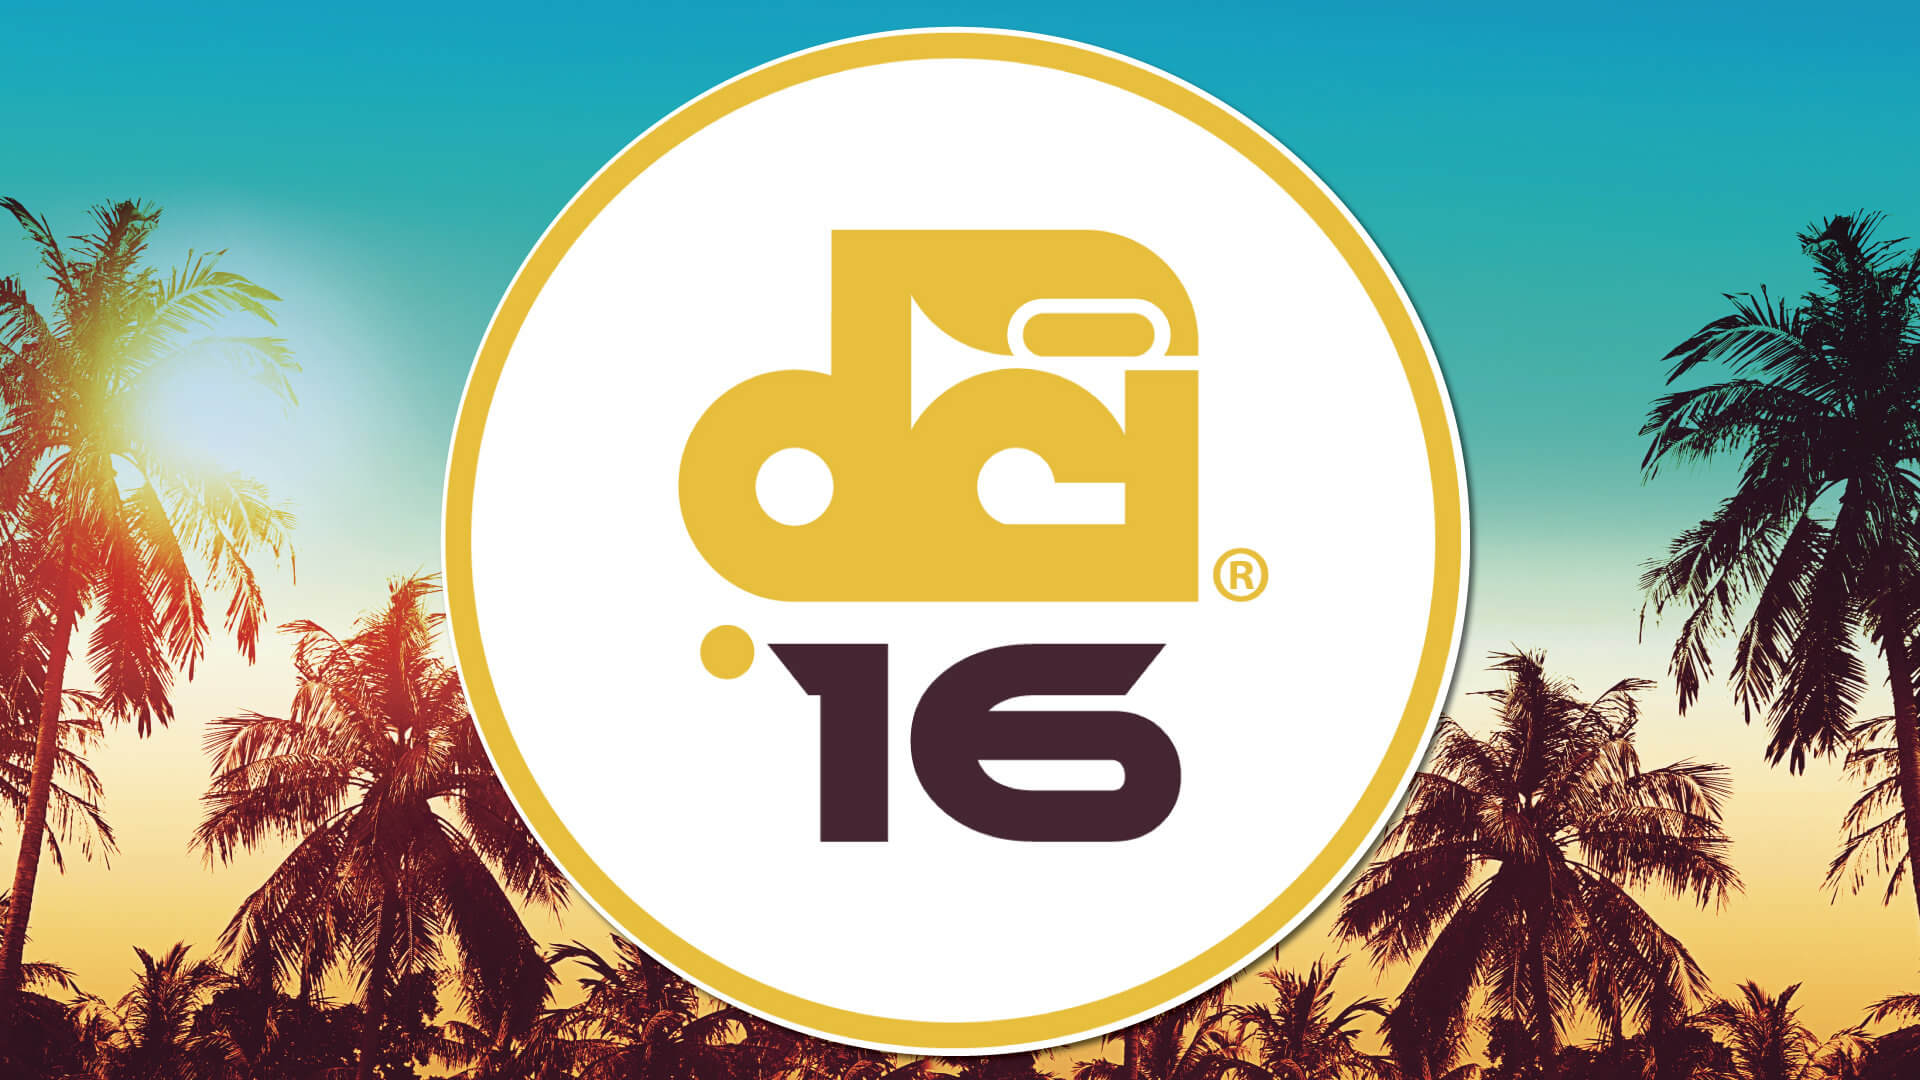 DCI Tour expected to return to Florida in 2016